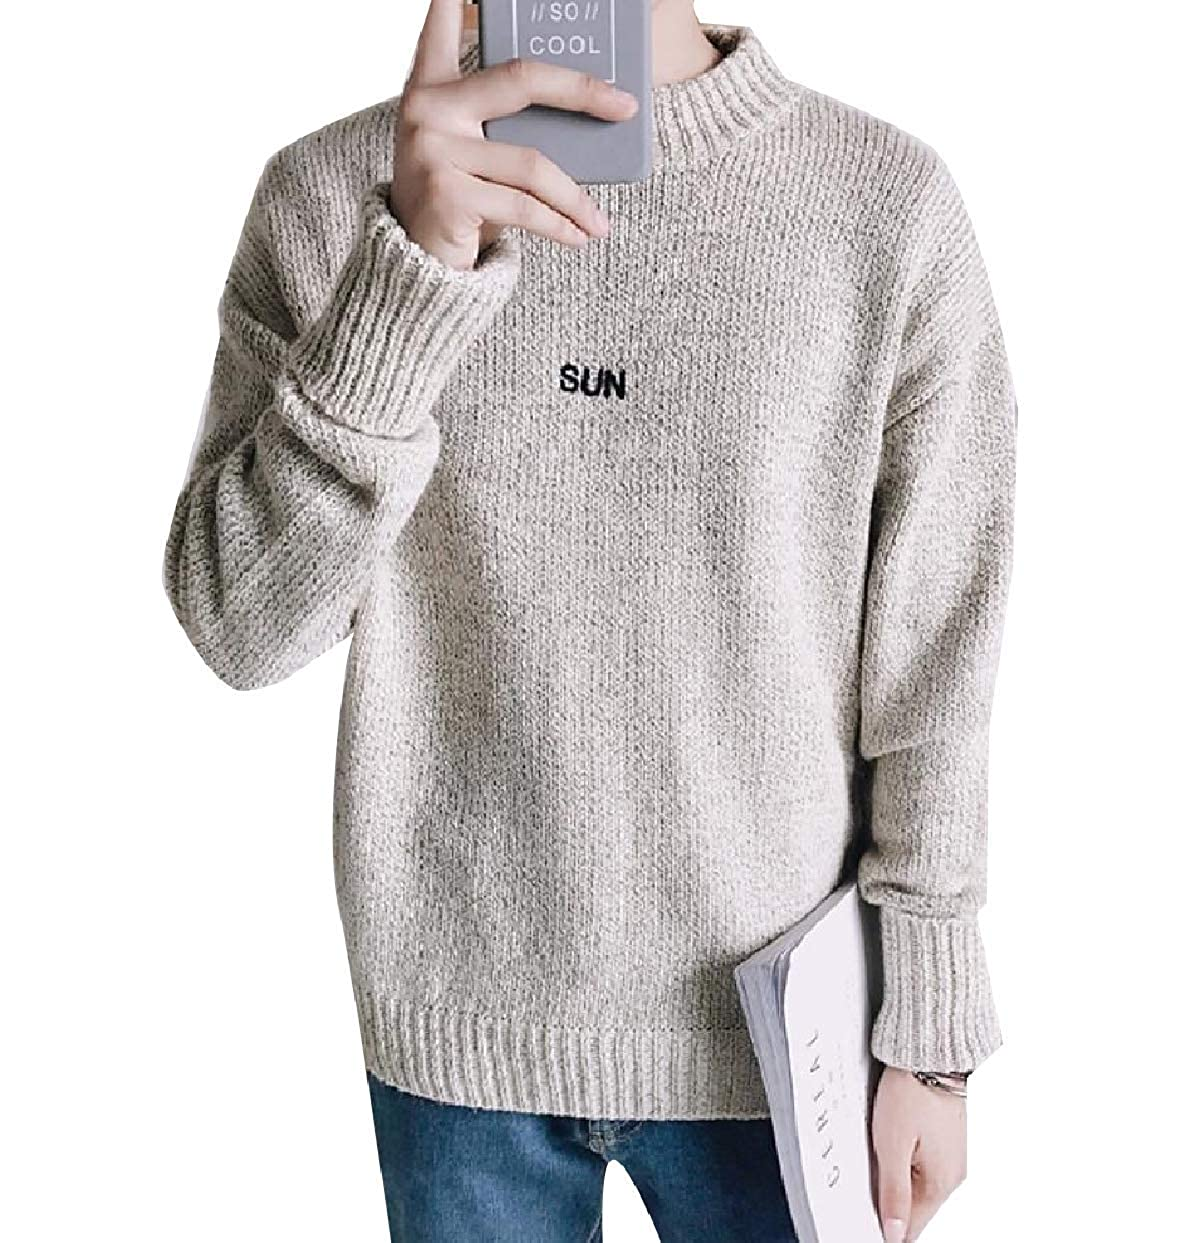 Zimaes-Men Casual Loose Embroidery Thermal Thicken Knitwear Sweater